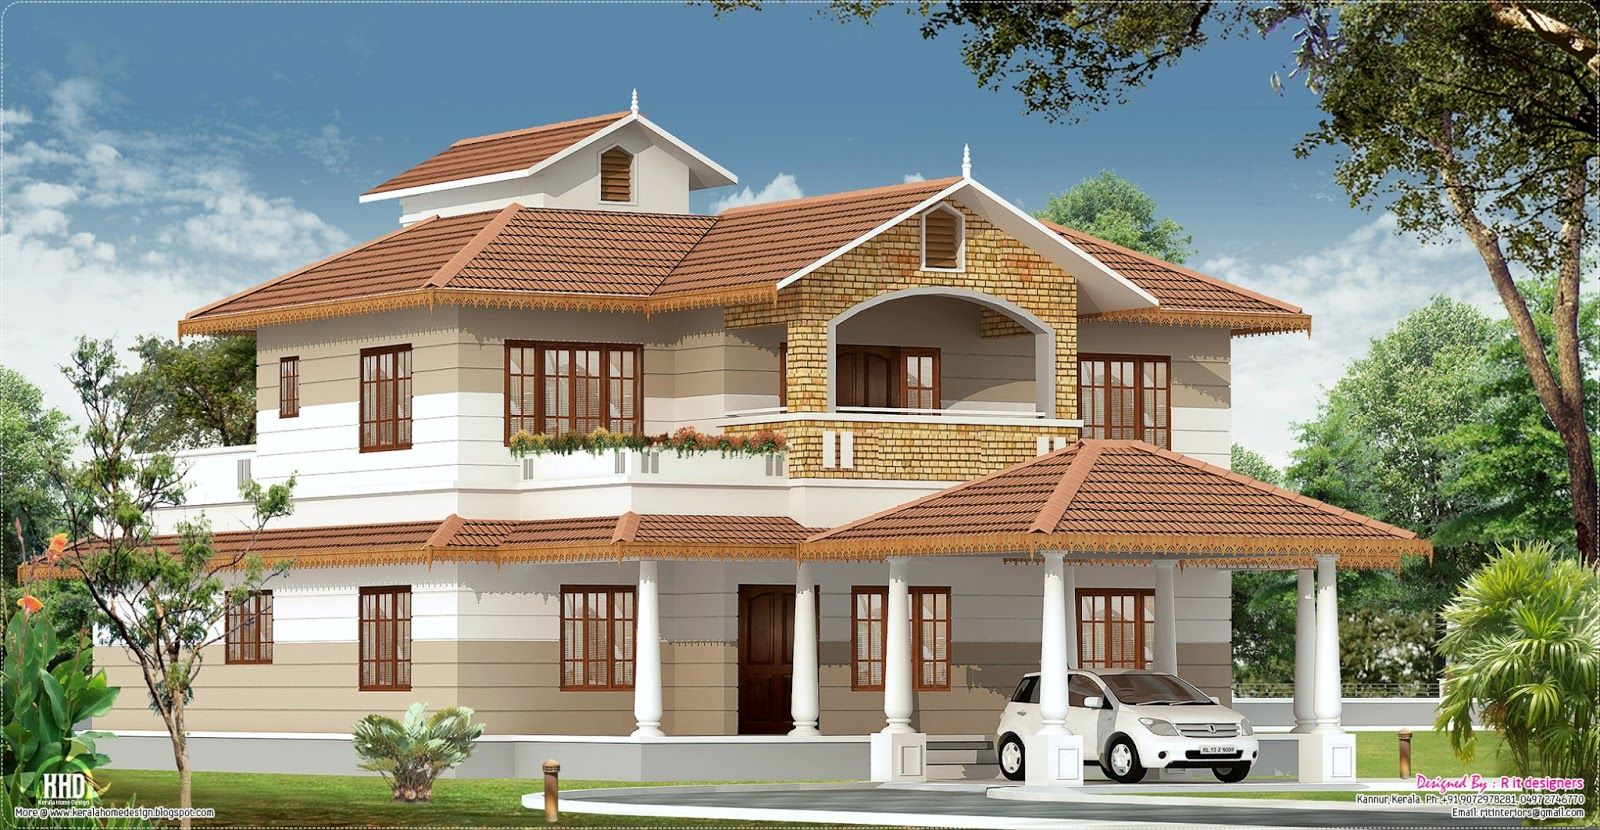 Kerala Style Home Interior Designs Designers Kannur Design House Plans Decorating Ideas